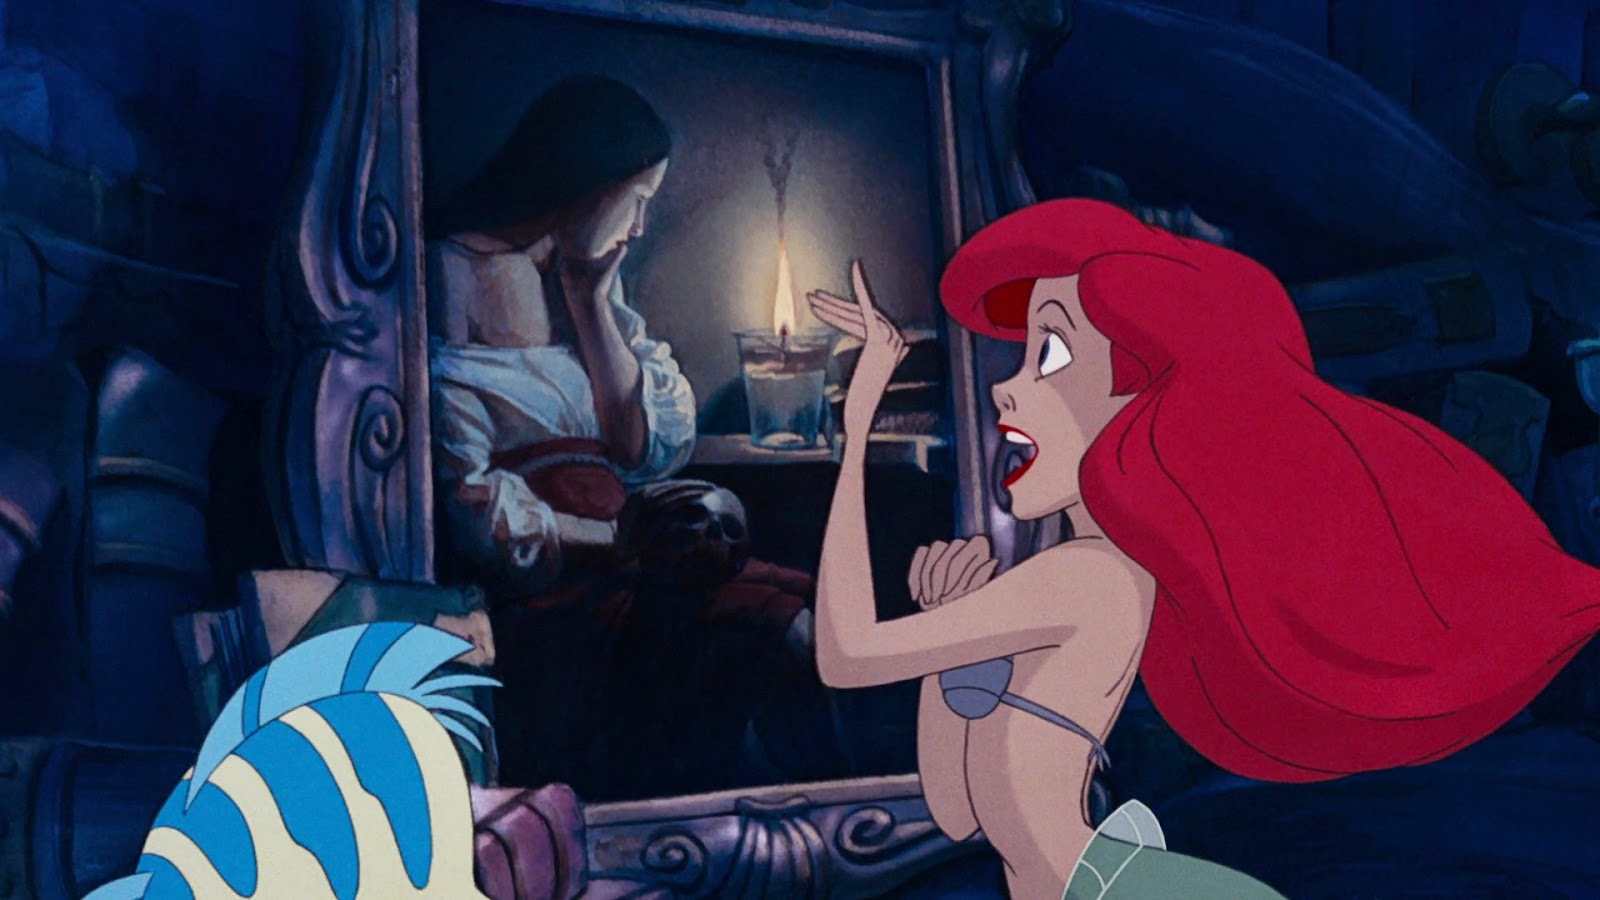 62 Disney Animated Feature Length Films Ranked From Best to Worst – An Otaku's Take On the Best and Worst Animated Disney Films – Disney Films Ranked From Best to Worst. Top 10 Disney Films